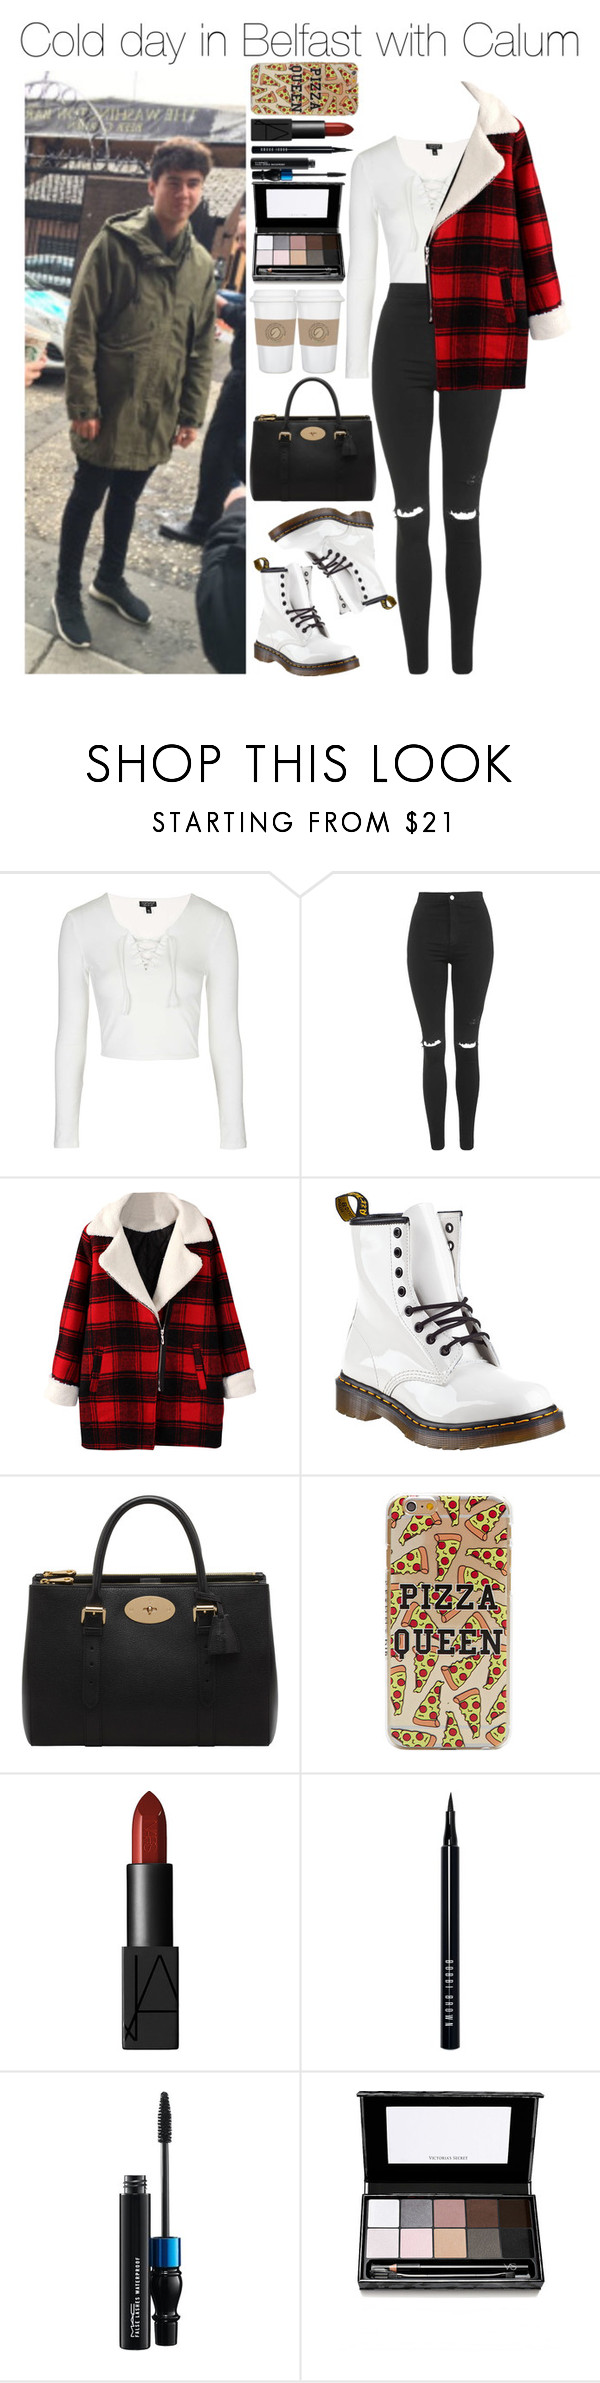 """""""Cold day in Belfast with Calum"""" by xhoneymoonavenuex ❤ liked on Polyvore featuring Topshop, Dr. Martens, Mulberry, NARS Cosmetics, Bobbi Brown Cosmetics, MAC Cosmetics and Victoria's Secret"""